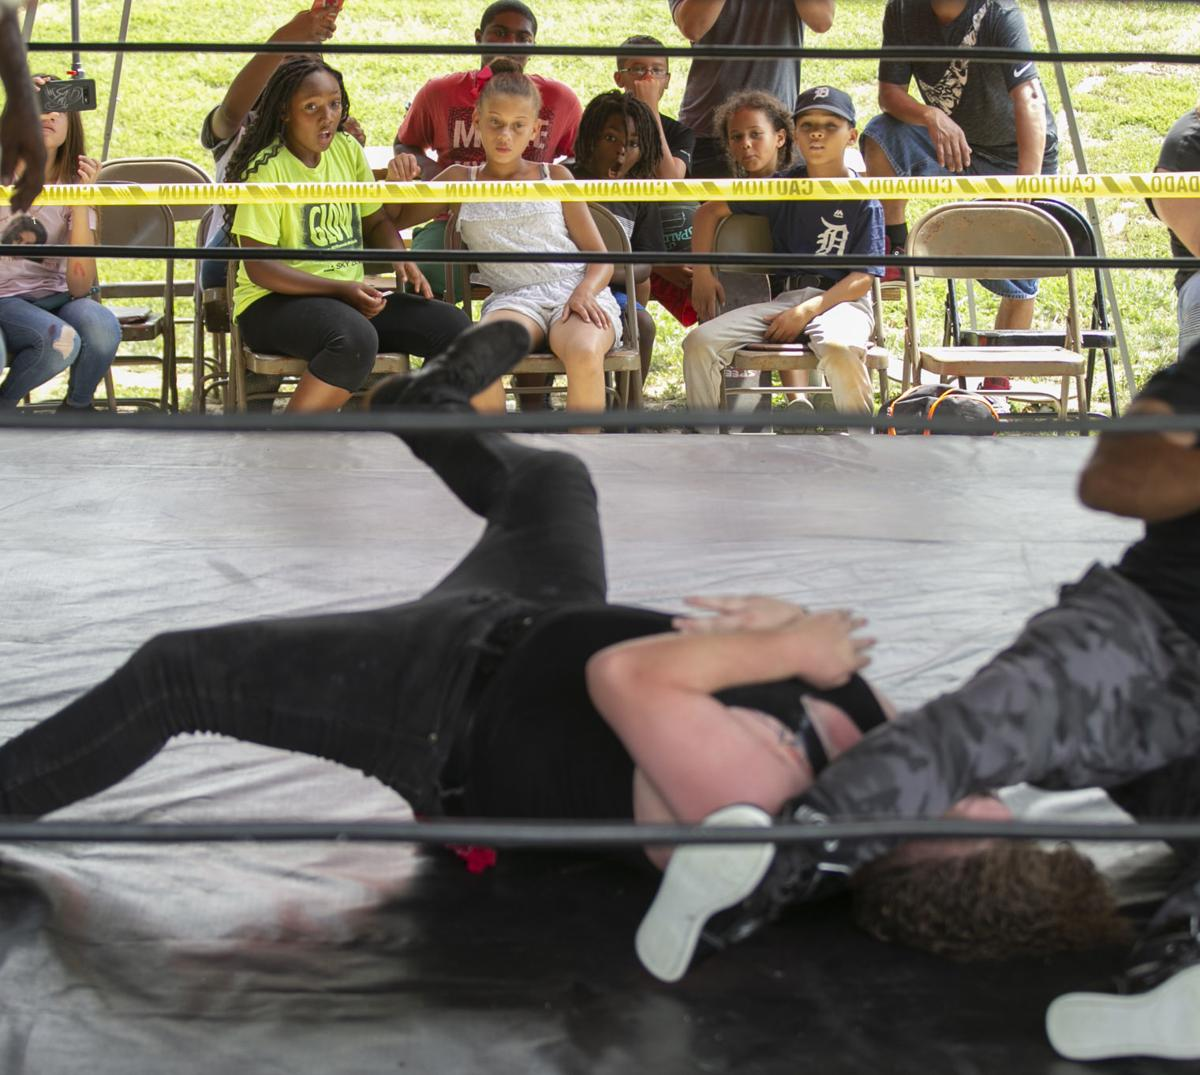 Wrestlers Trade Punches, Collect School Supplies